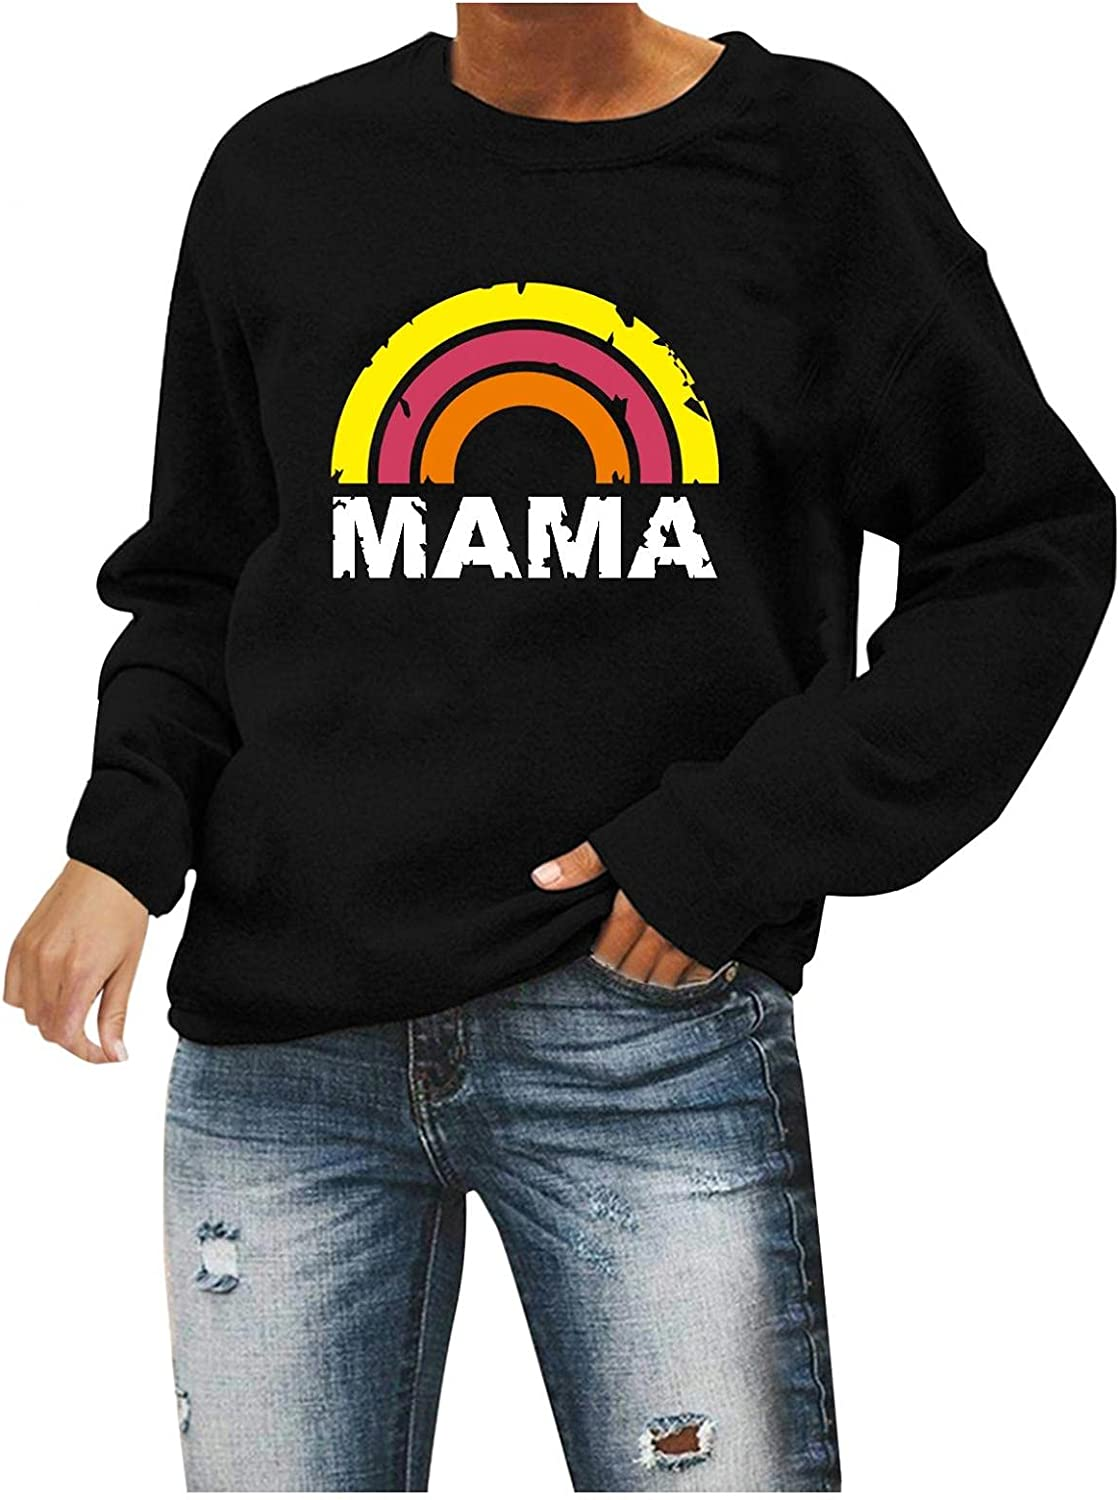 Oversized Sweatshirt for Women, Women's Pullover Hoodies Tops Casual Button Down Long Sleeve Sweatshirts with Pocket